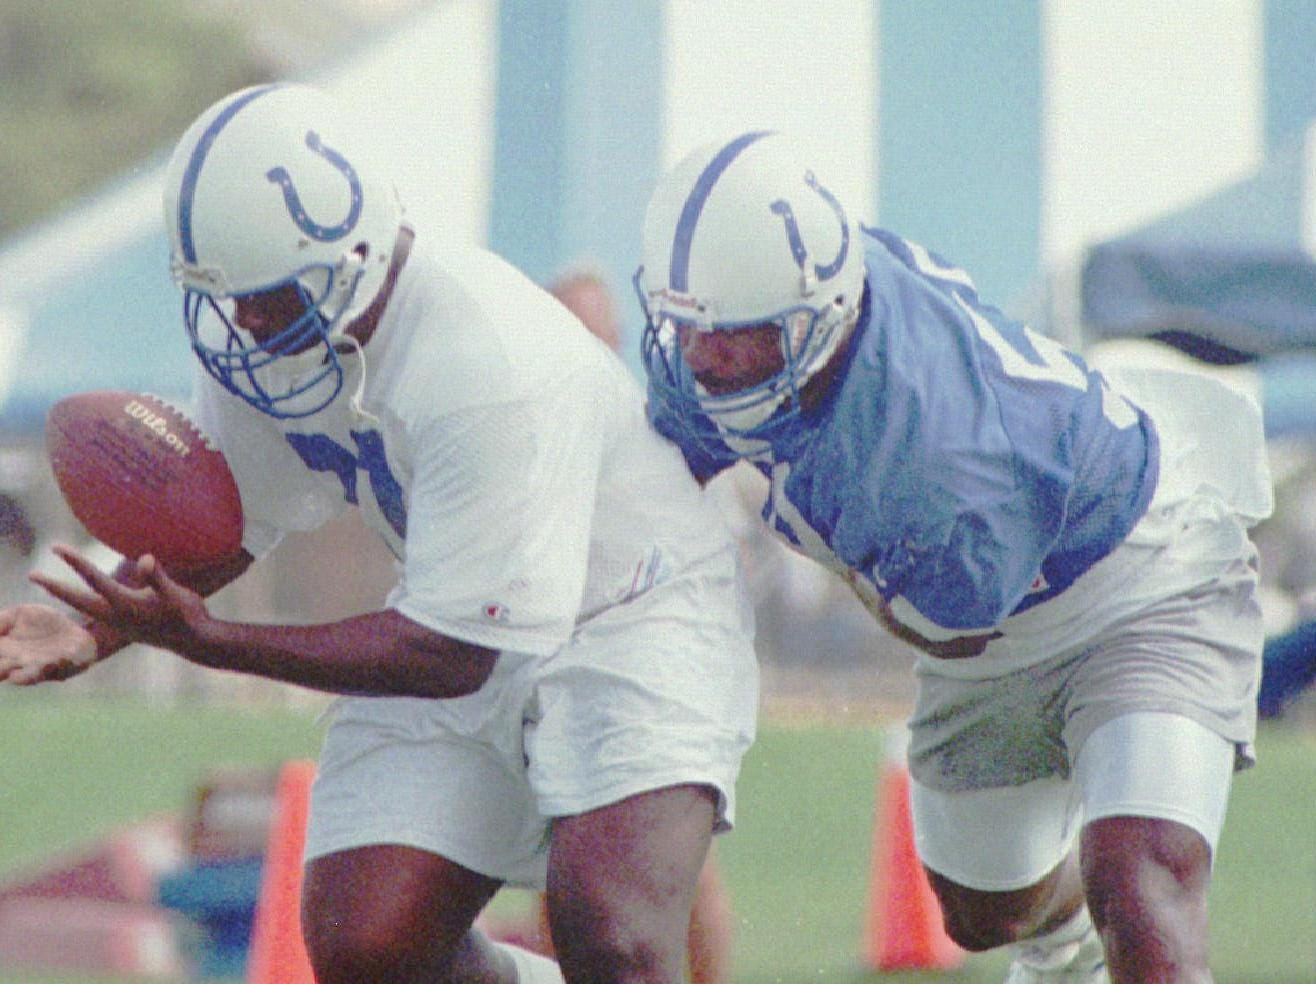 Indianapolis Colts' Quentin Coryatt, right, tries to stay with Lamont Warren during passing drill Monday, July 17, 1995, at the Colts' training camp in Anderson, Ind.